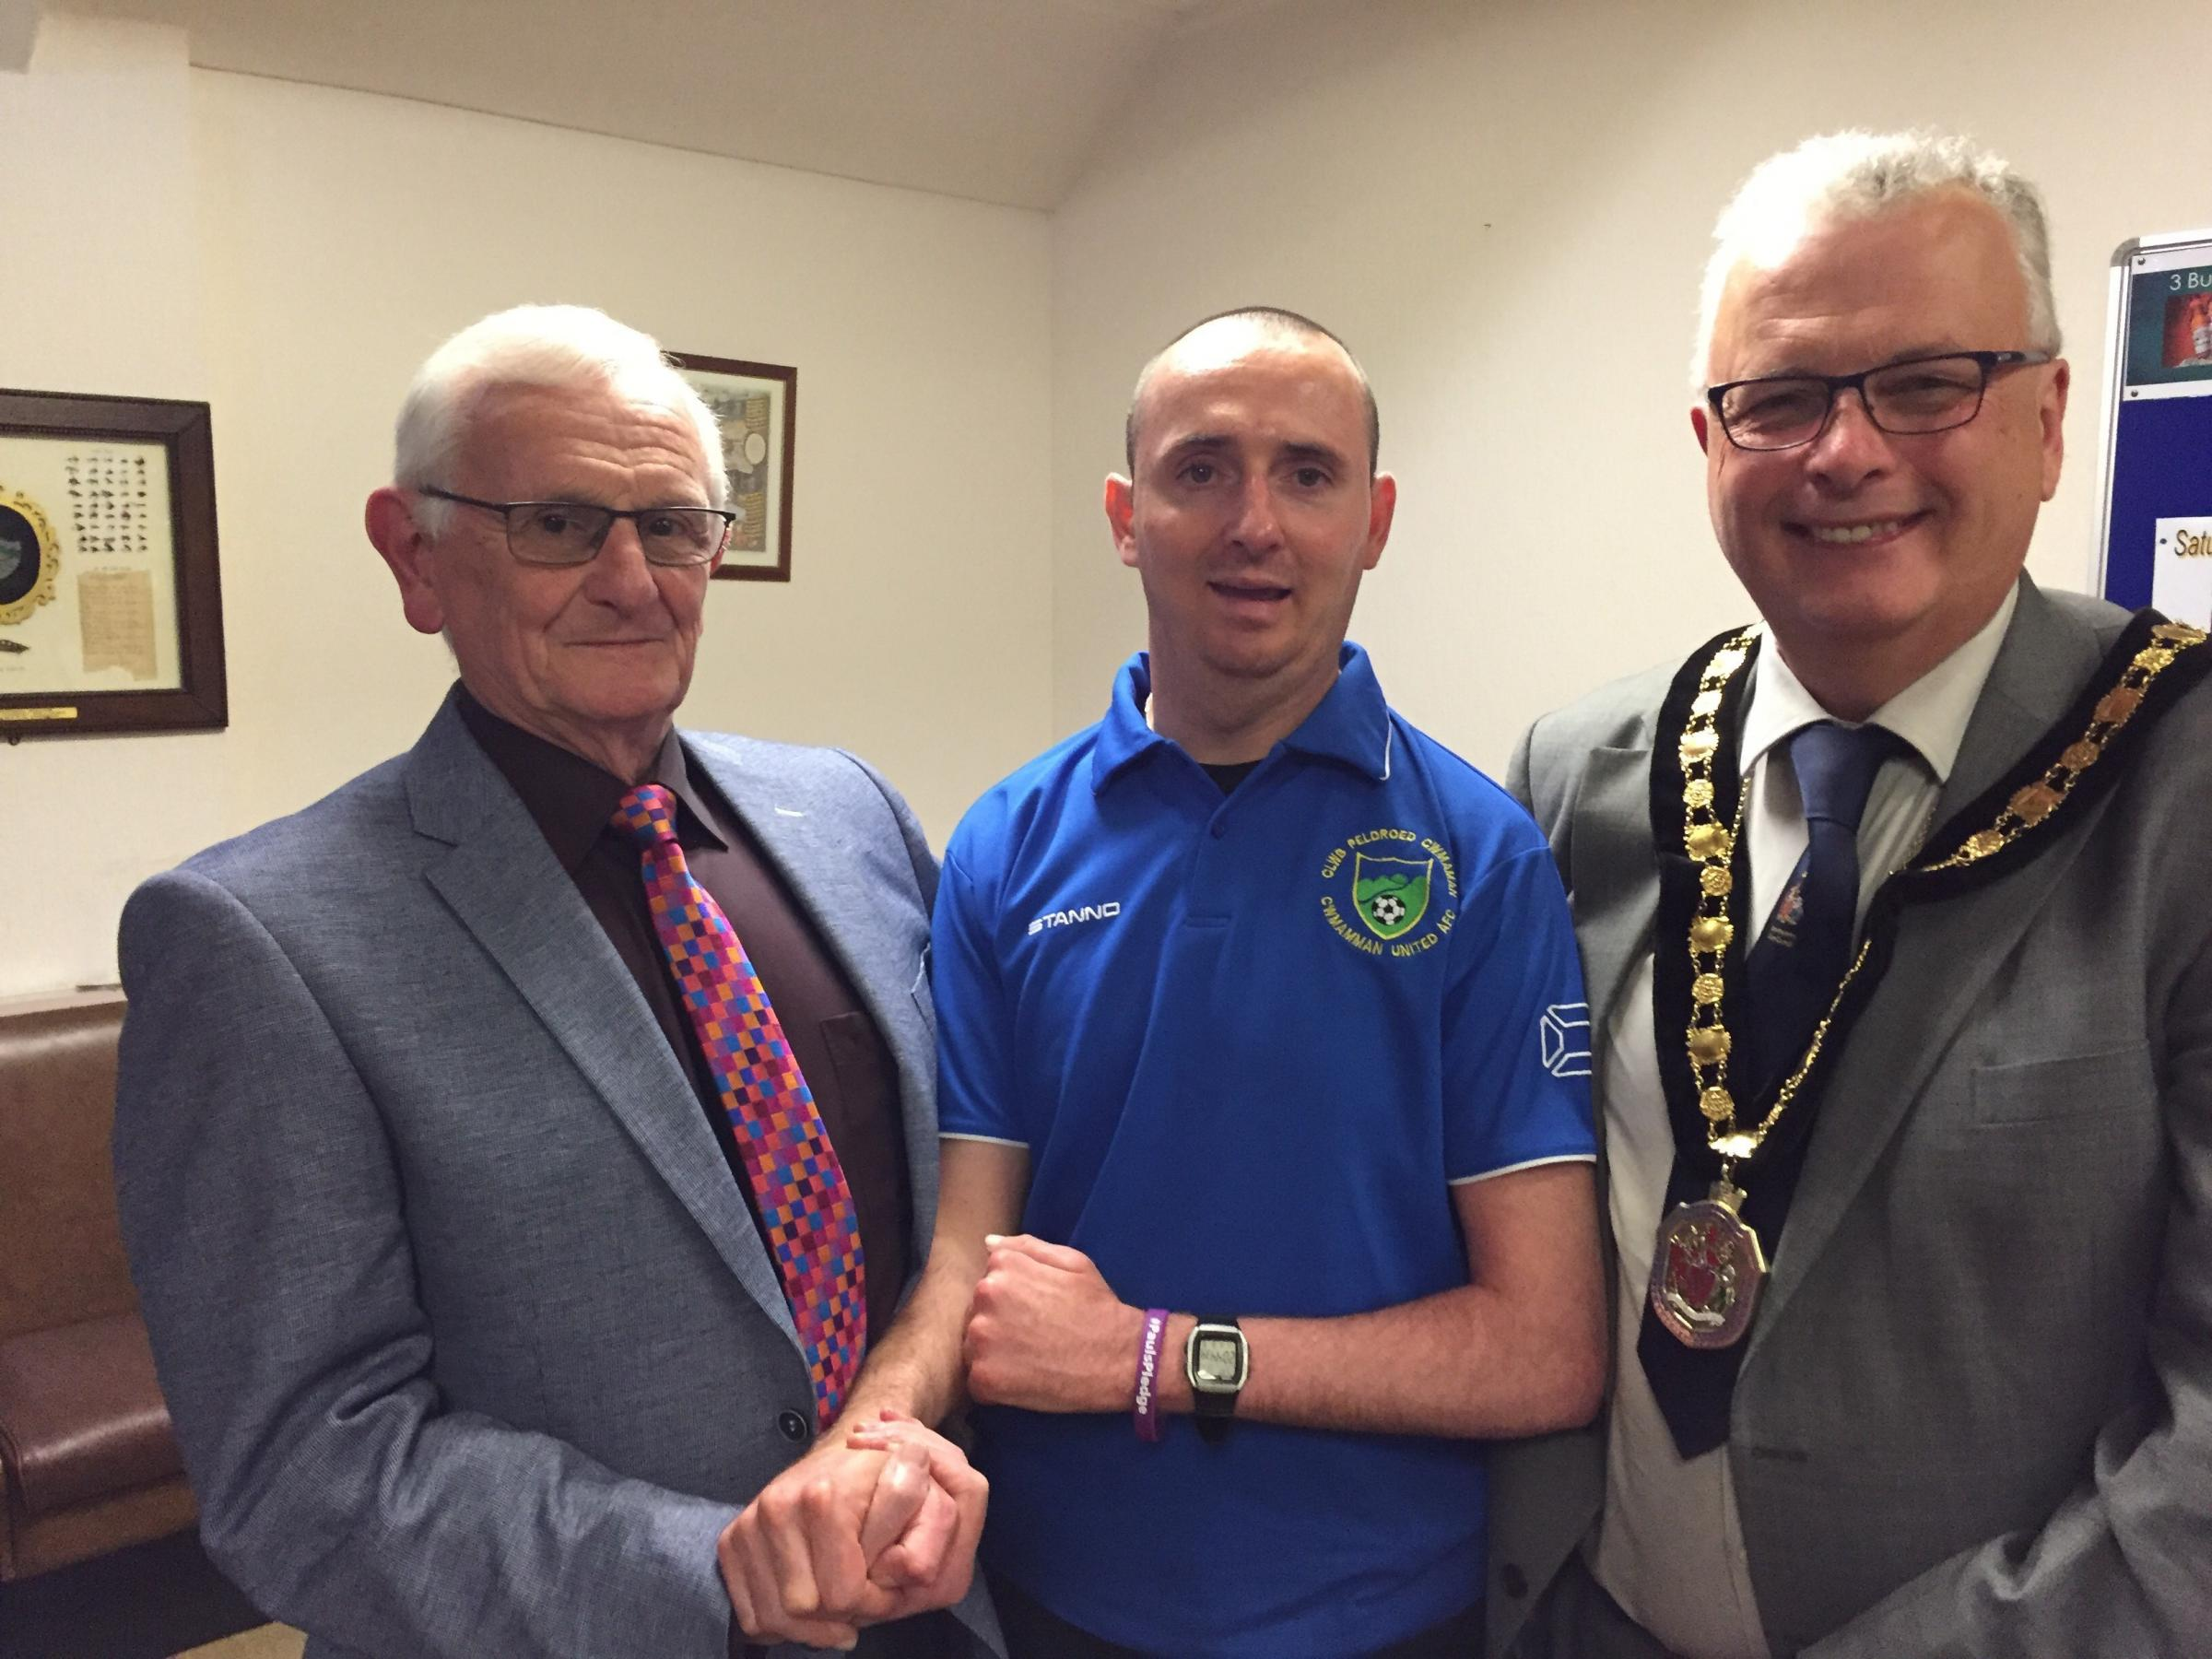 Cllr.  David Jenkins, Paul Pugh (Former Cwmamman Utd Player / Captain and Kevin Madge Vice Chair of Carmarthenshire County Council.